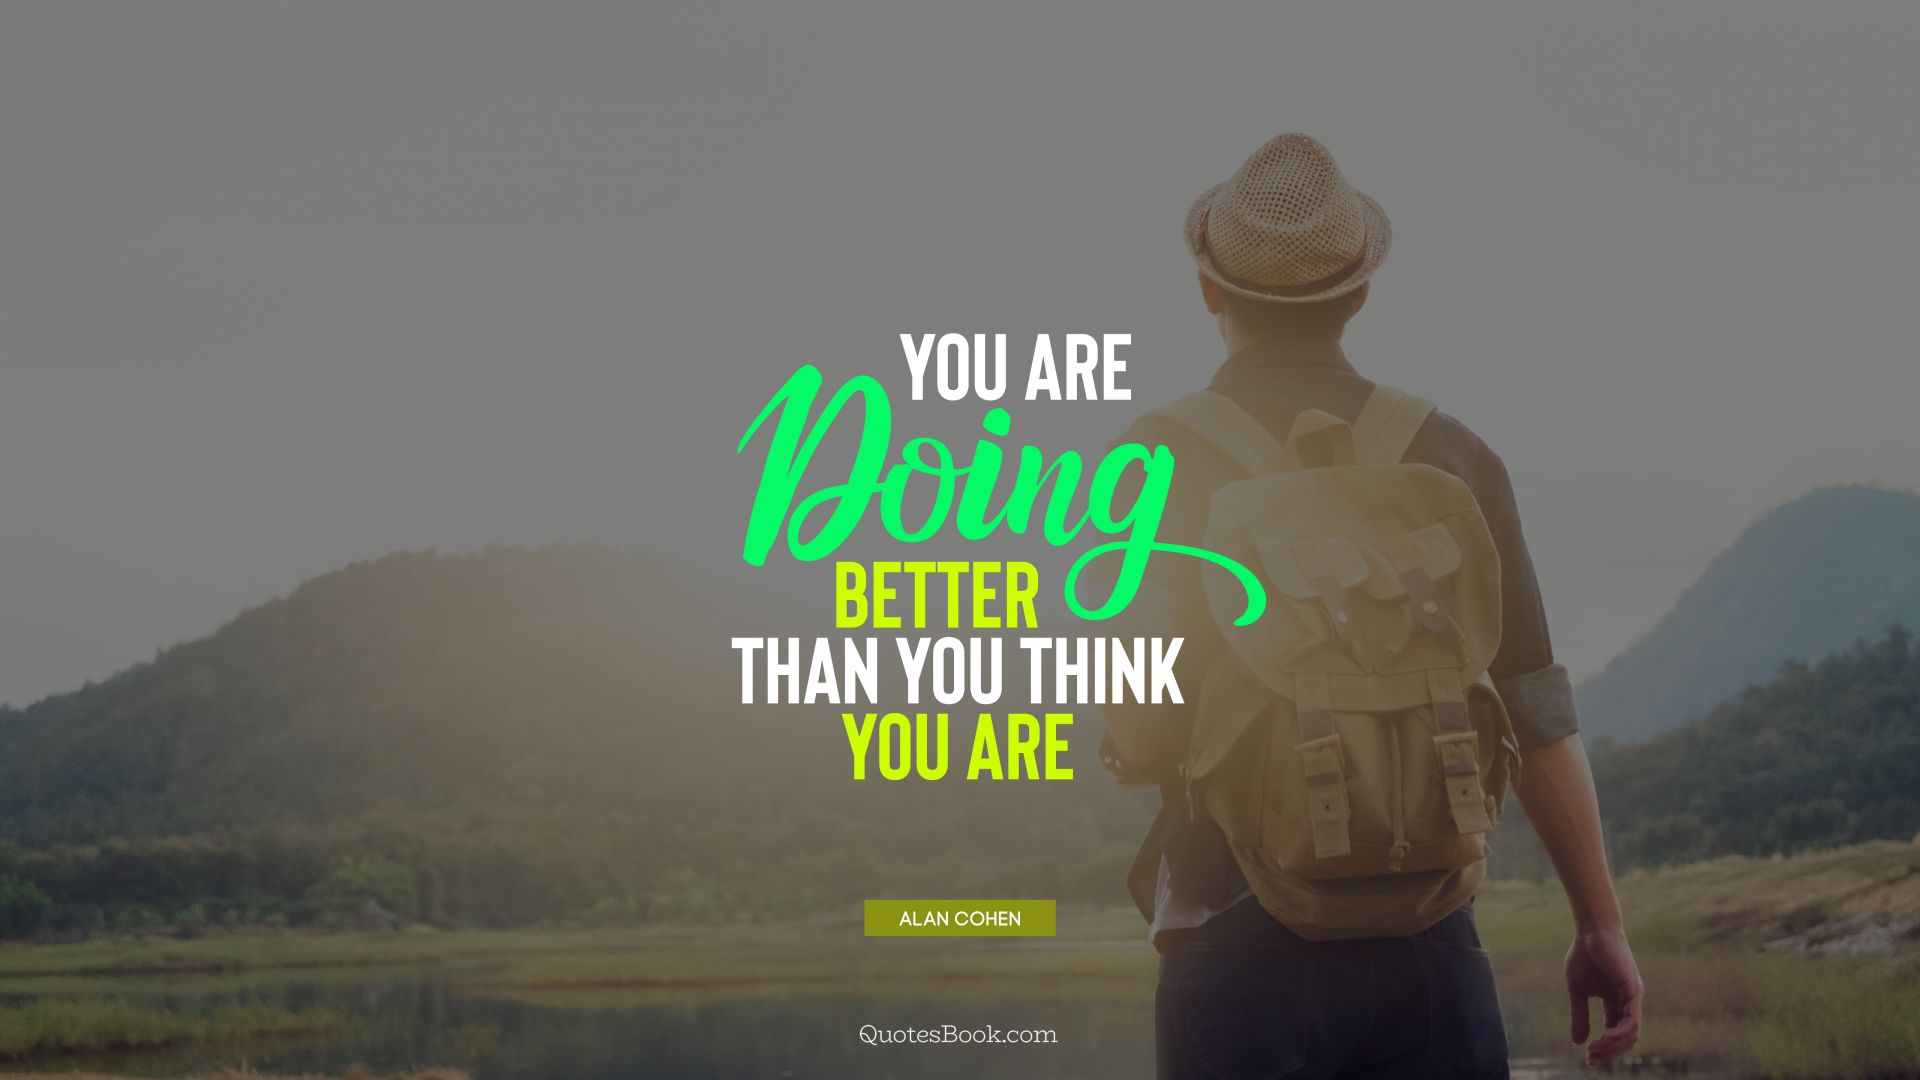 You are doing better than you think you are. - Quote by Alan Cohen